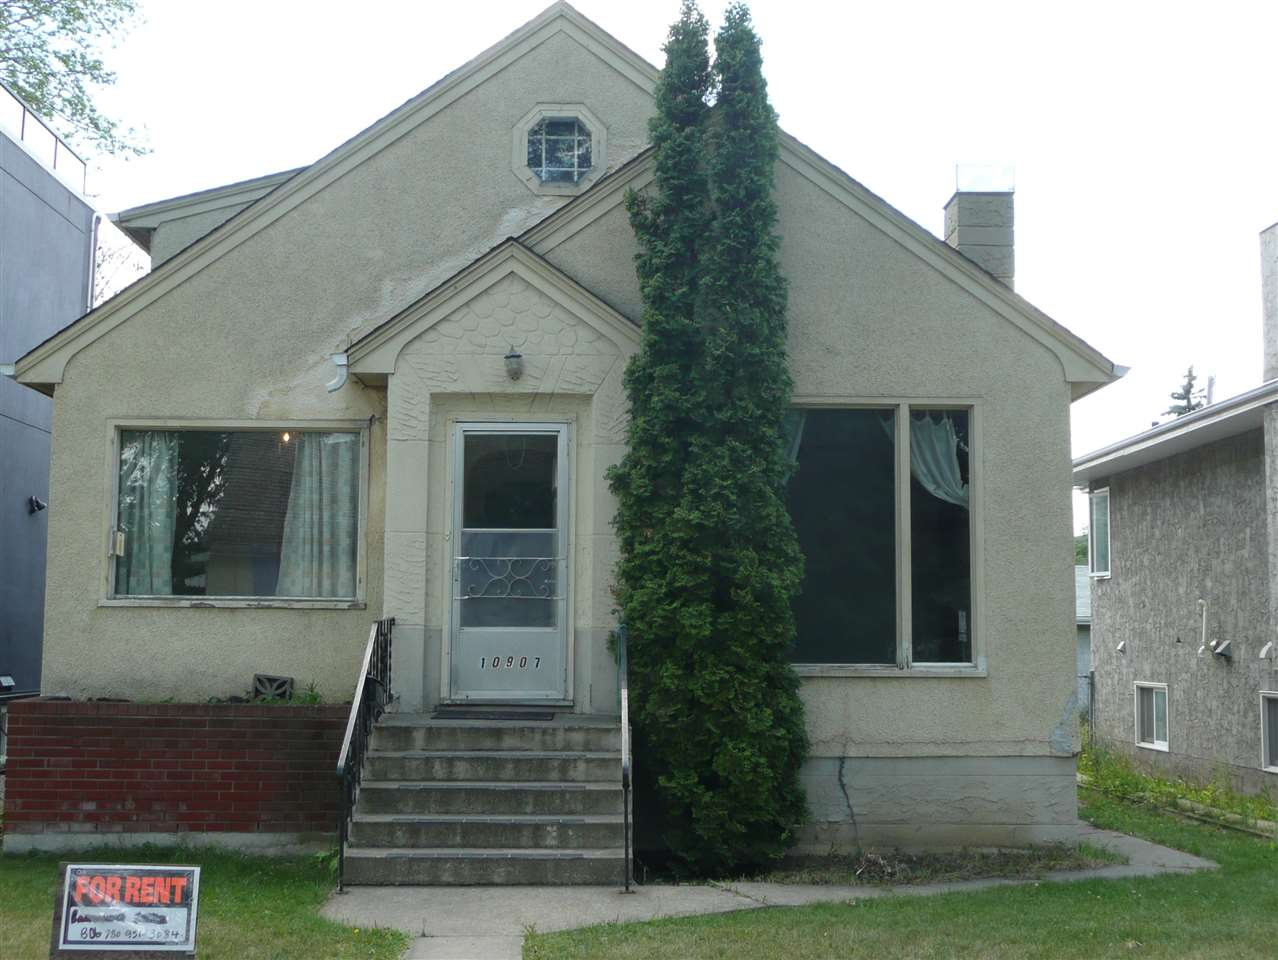 10907 77 Avenue NW, 4 bed, 2 bath, at $429,000